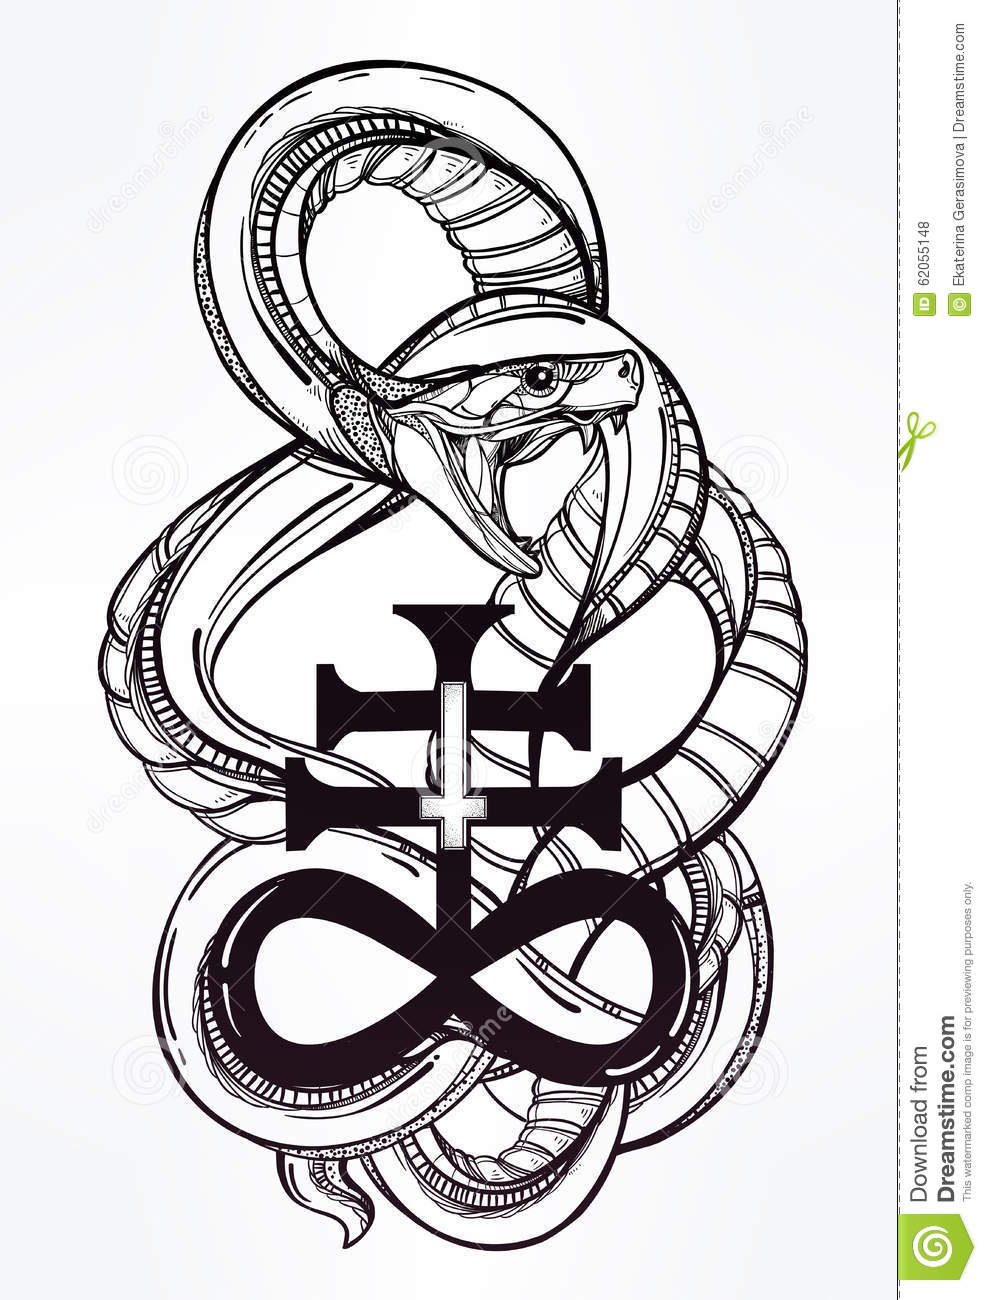 Royalty Free Vector Download Snake With Satanic